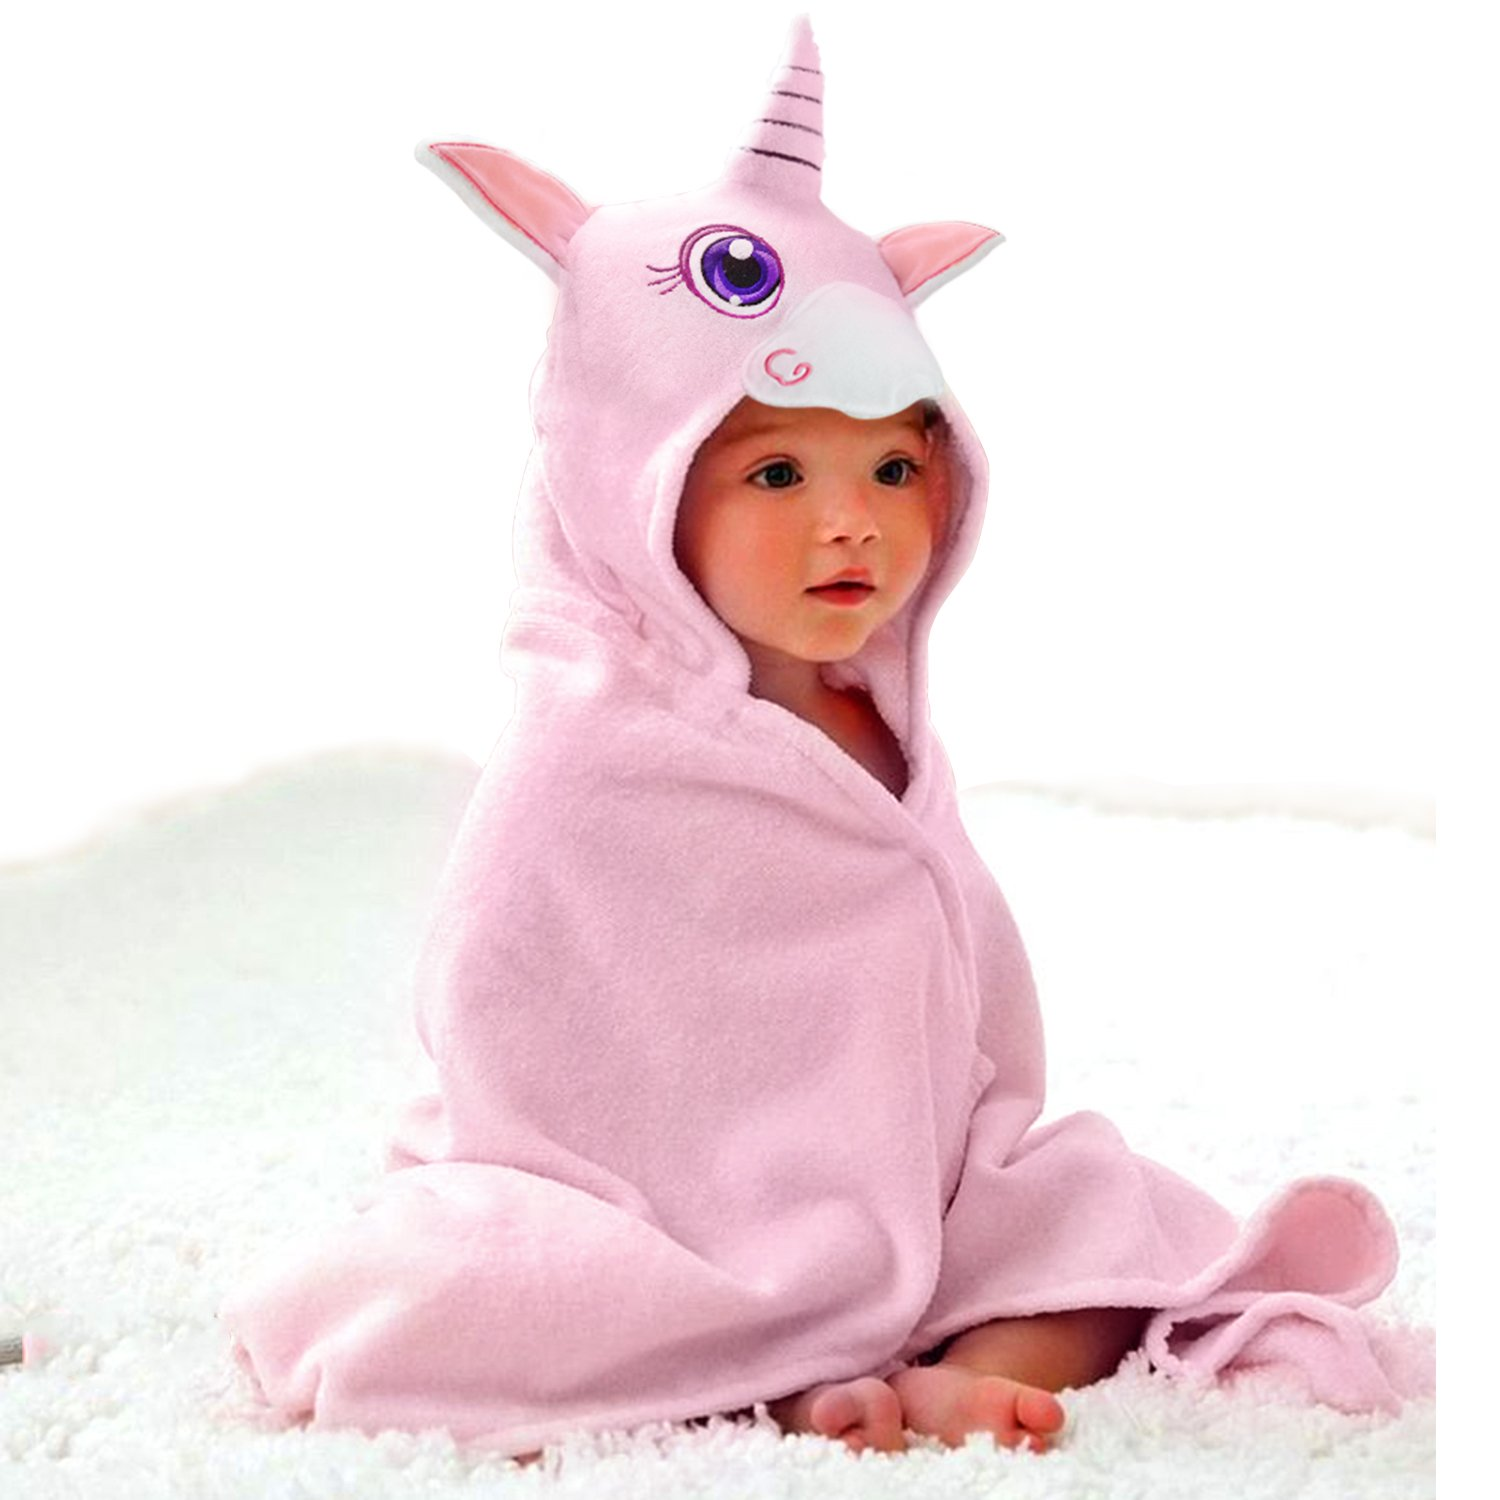 Baby Hooded Towel Upsimples Unicorn Baby Towels for Baby Girls 35 × 35 Inches Ultra Large 500GSM Super Soft Organic Bamboo Baby Towels for Baby Infant Toddler | Baby Girl Shower Gift Photo Shoot Props CH-UP01013